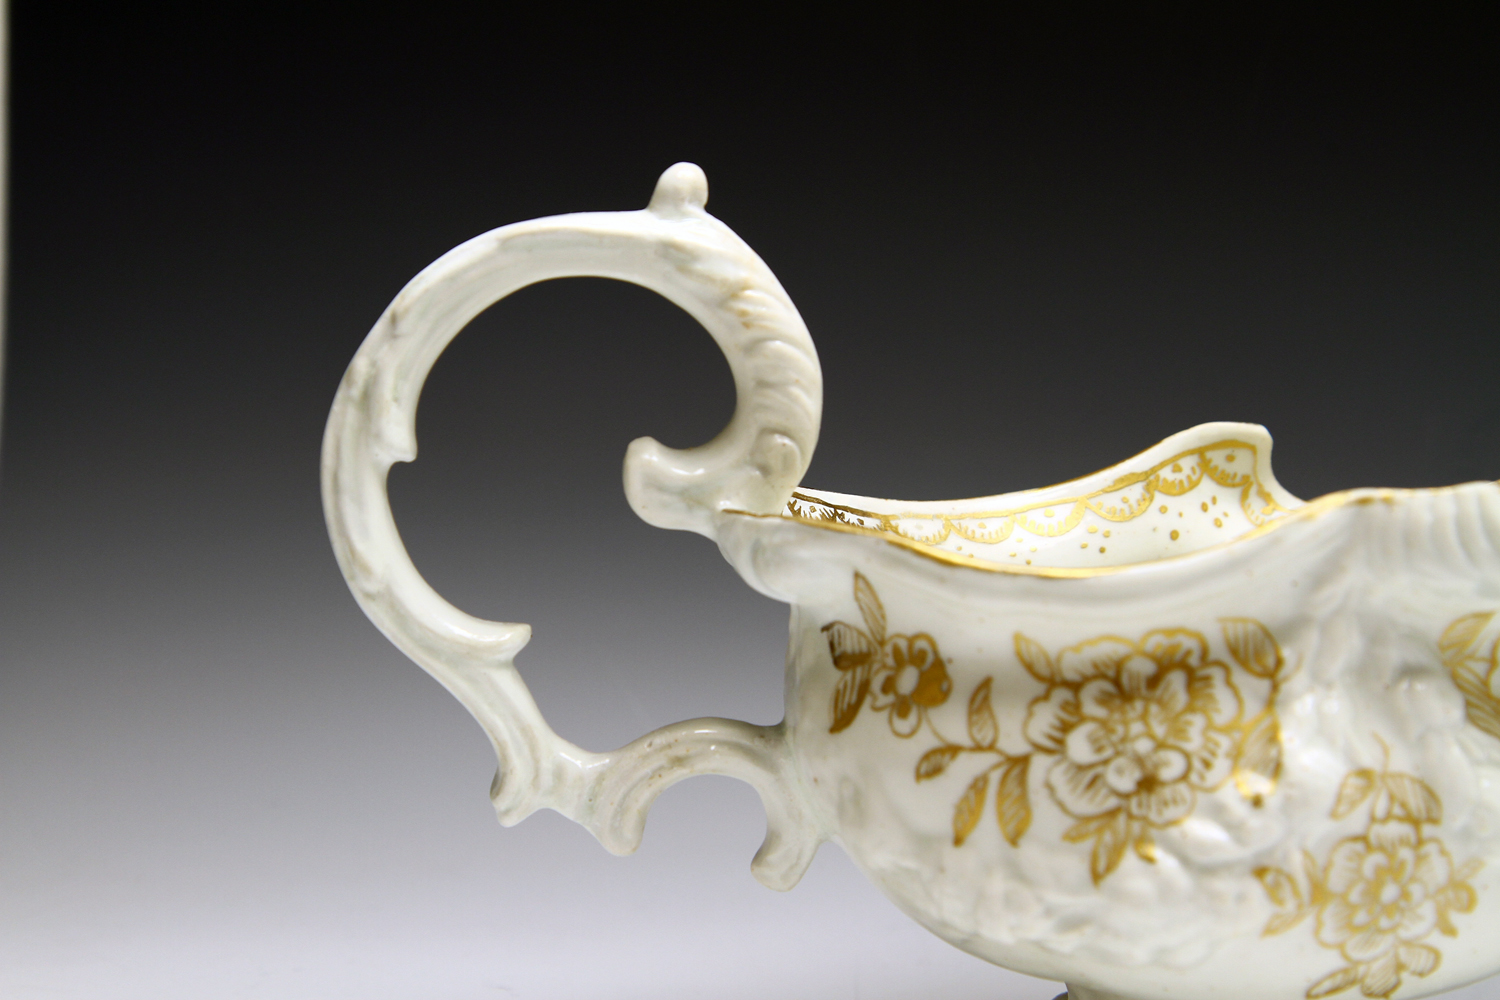 1029 - Bow rococo sauceboat c 1750, replacement handle